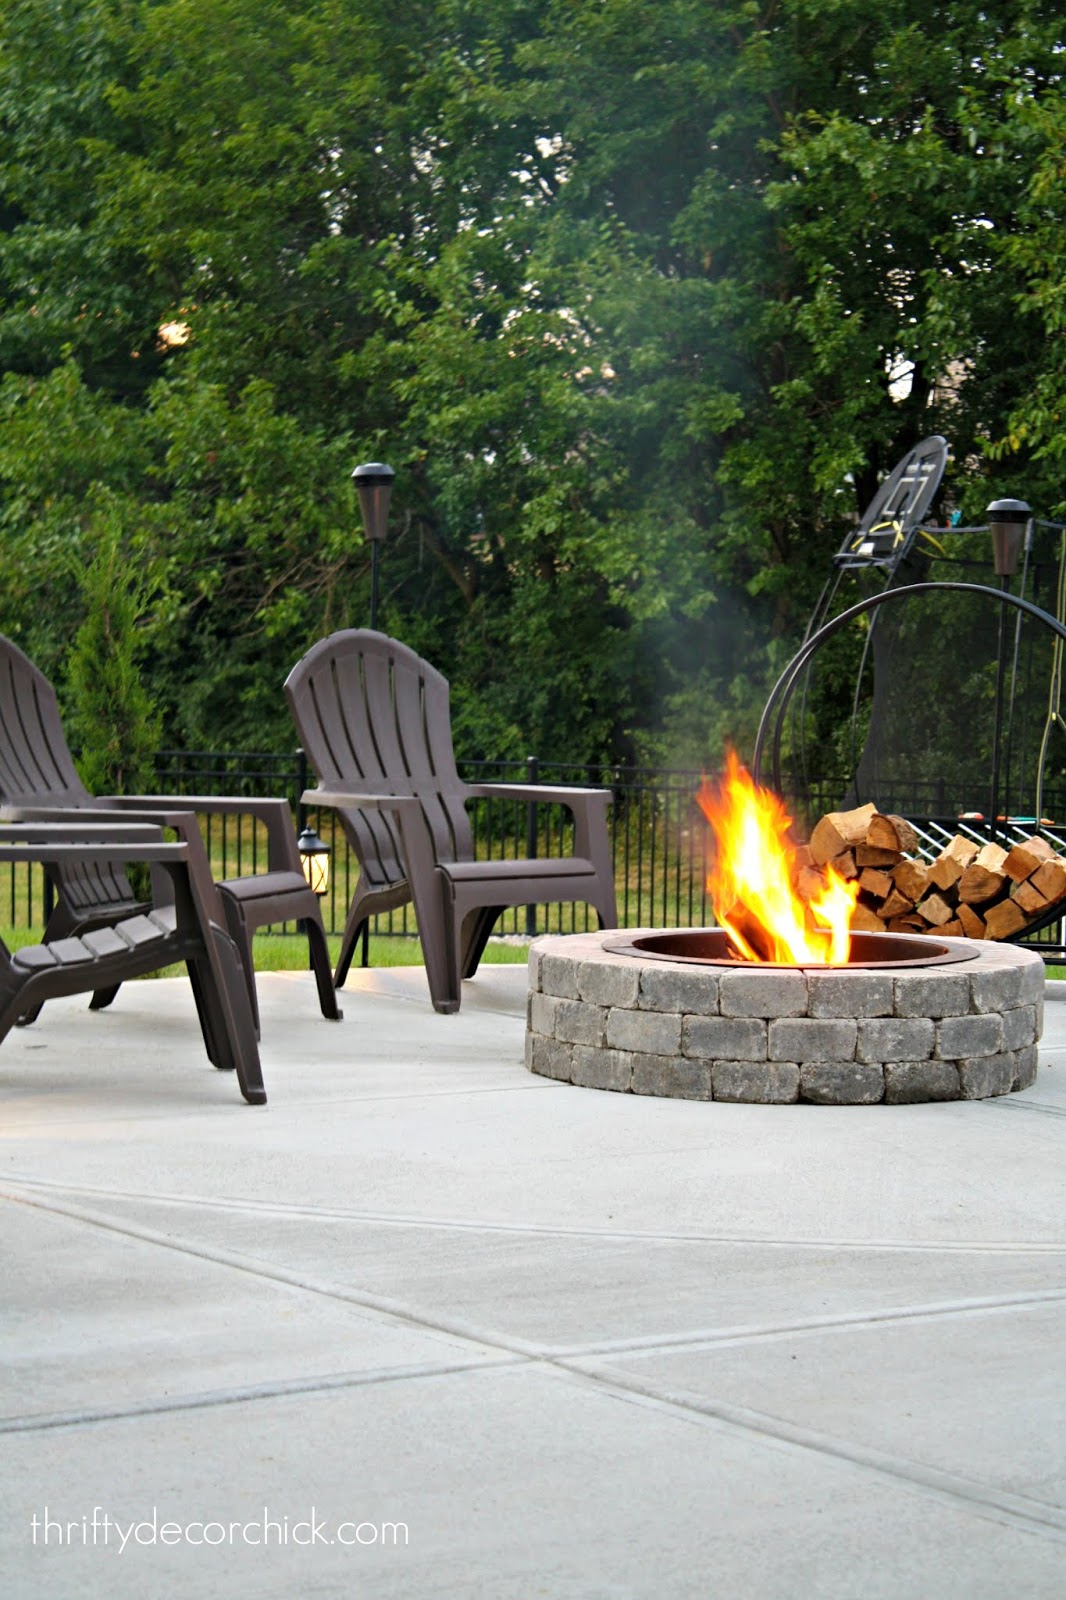 Adirondack chairs around fire pit on patio